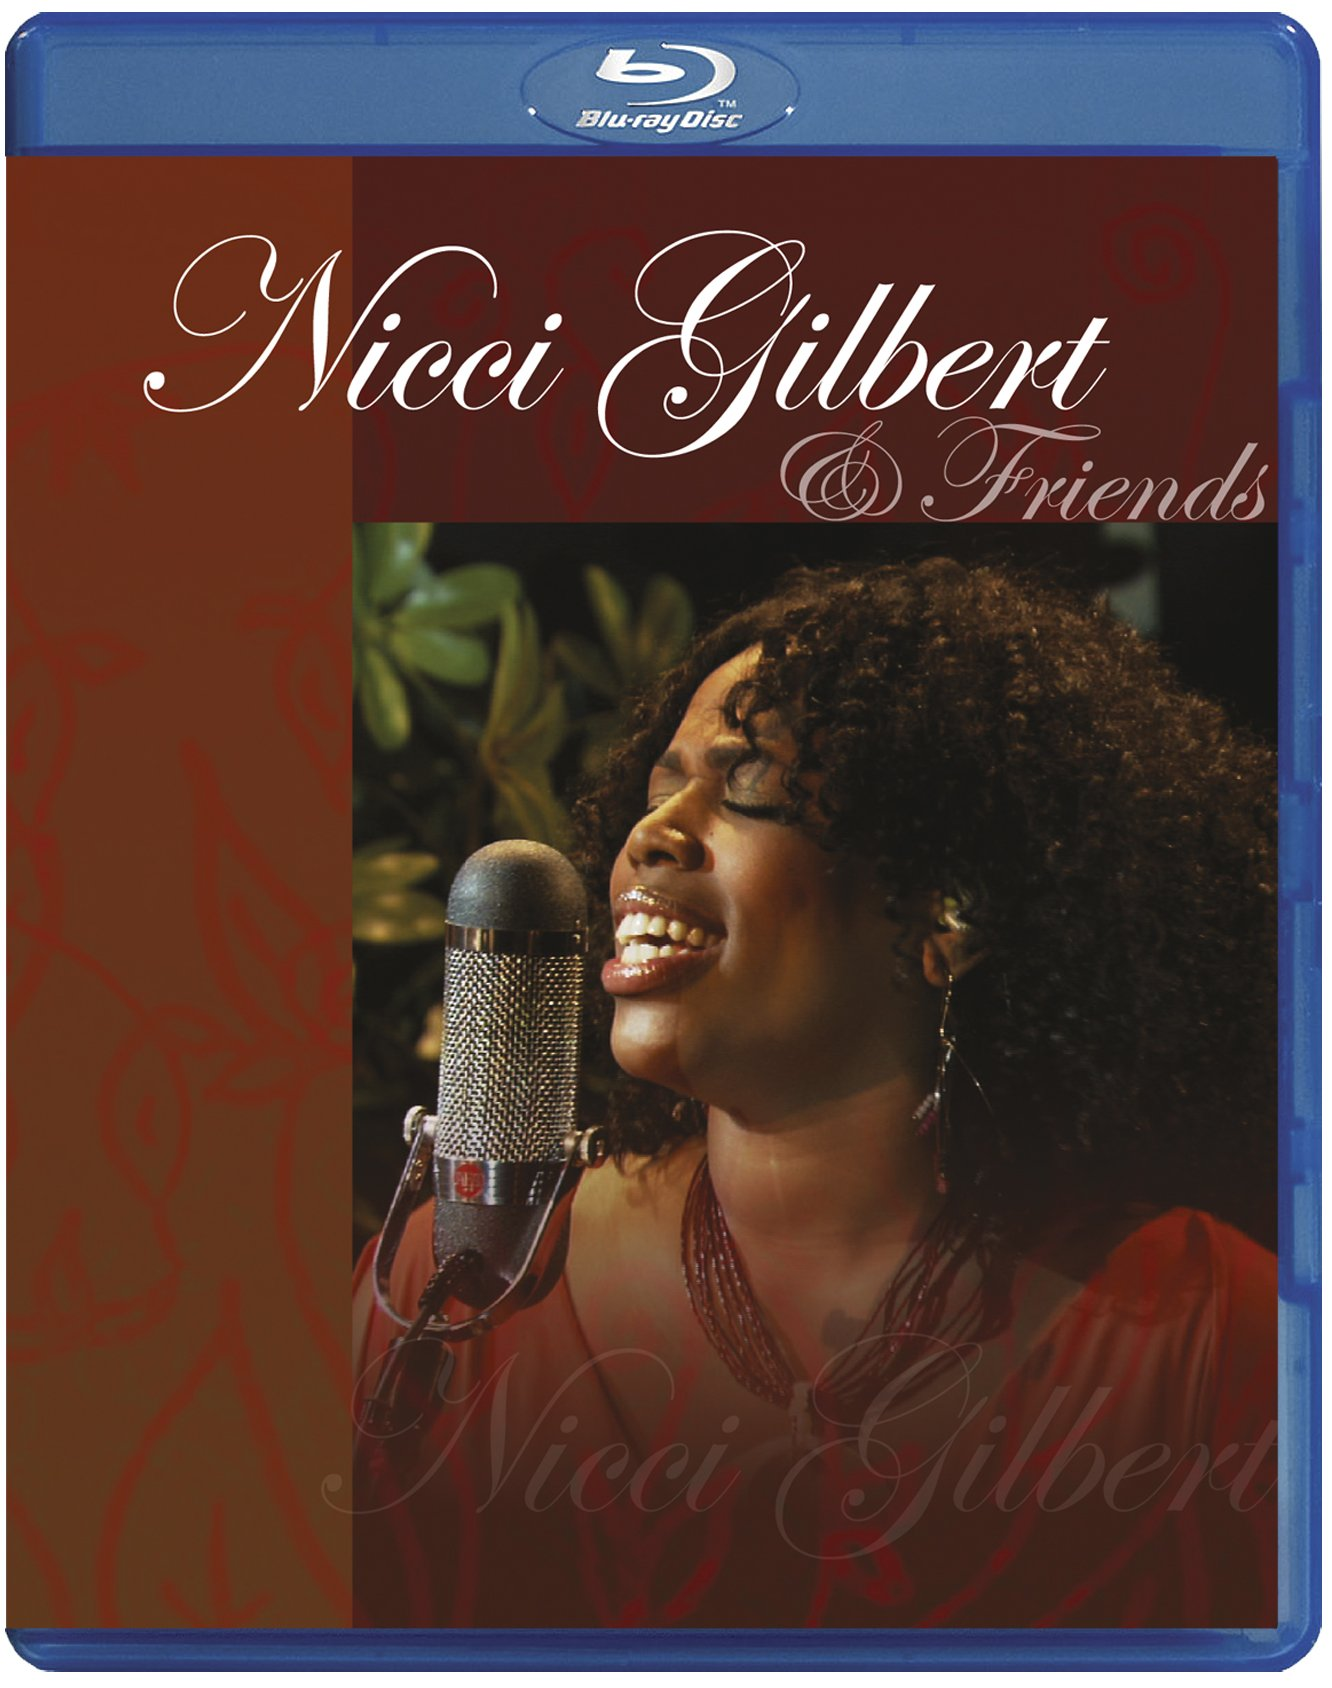 Nicci Gilbert - Nicci Gilbert & Friends (Blu-ray)